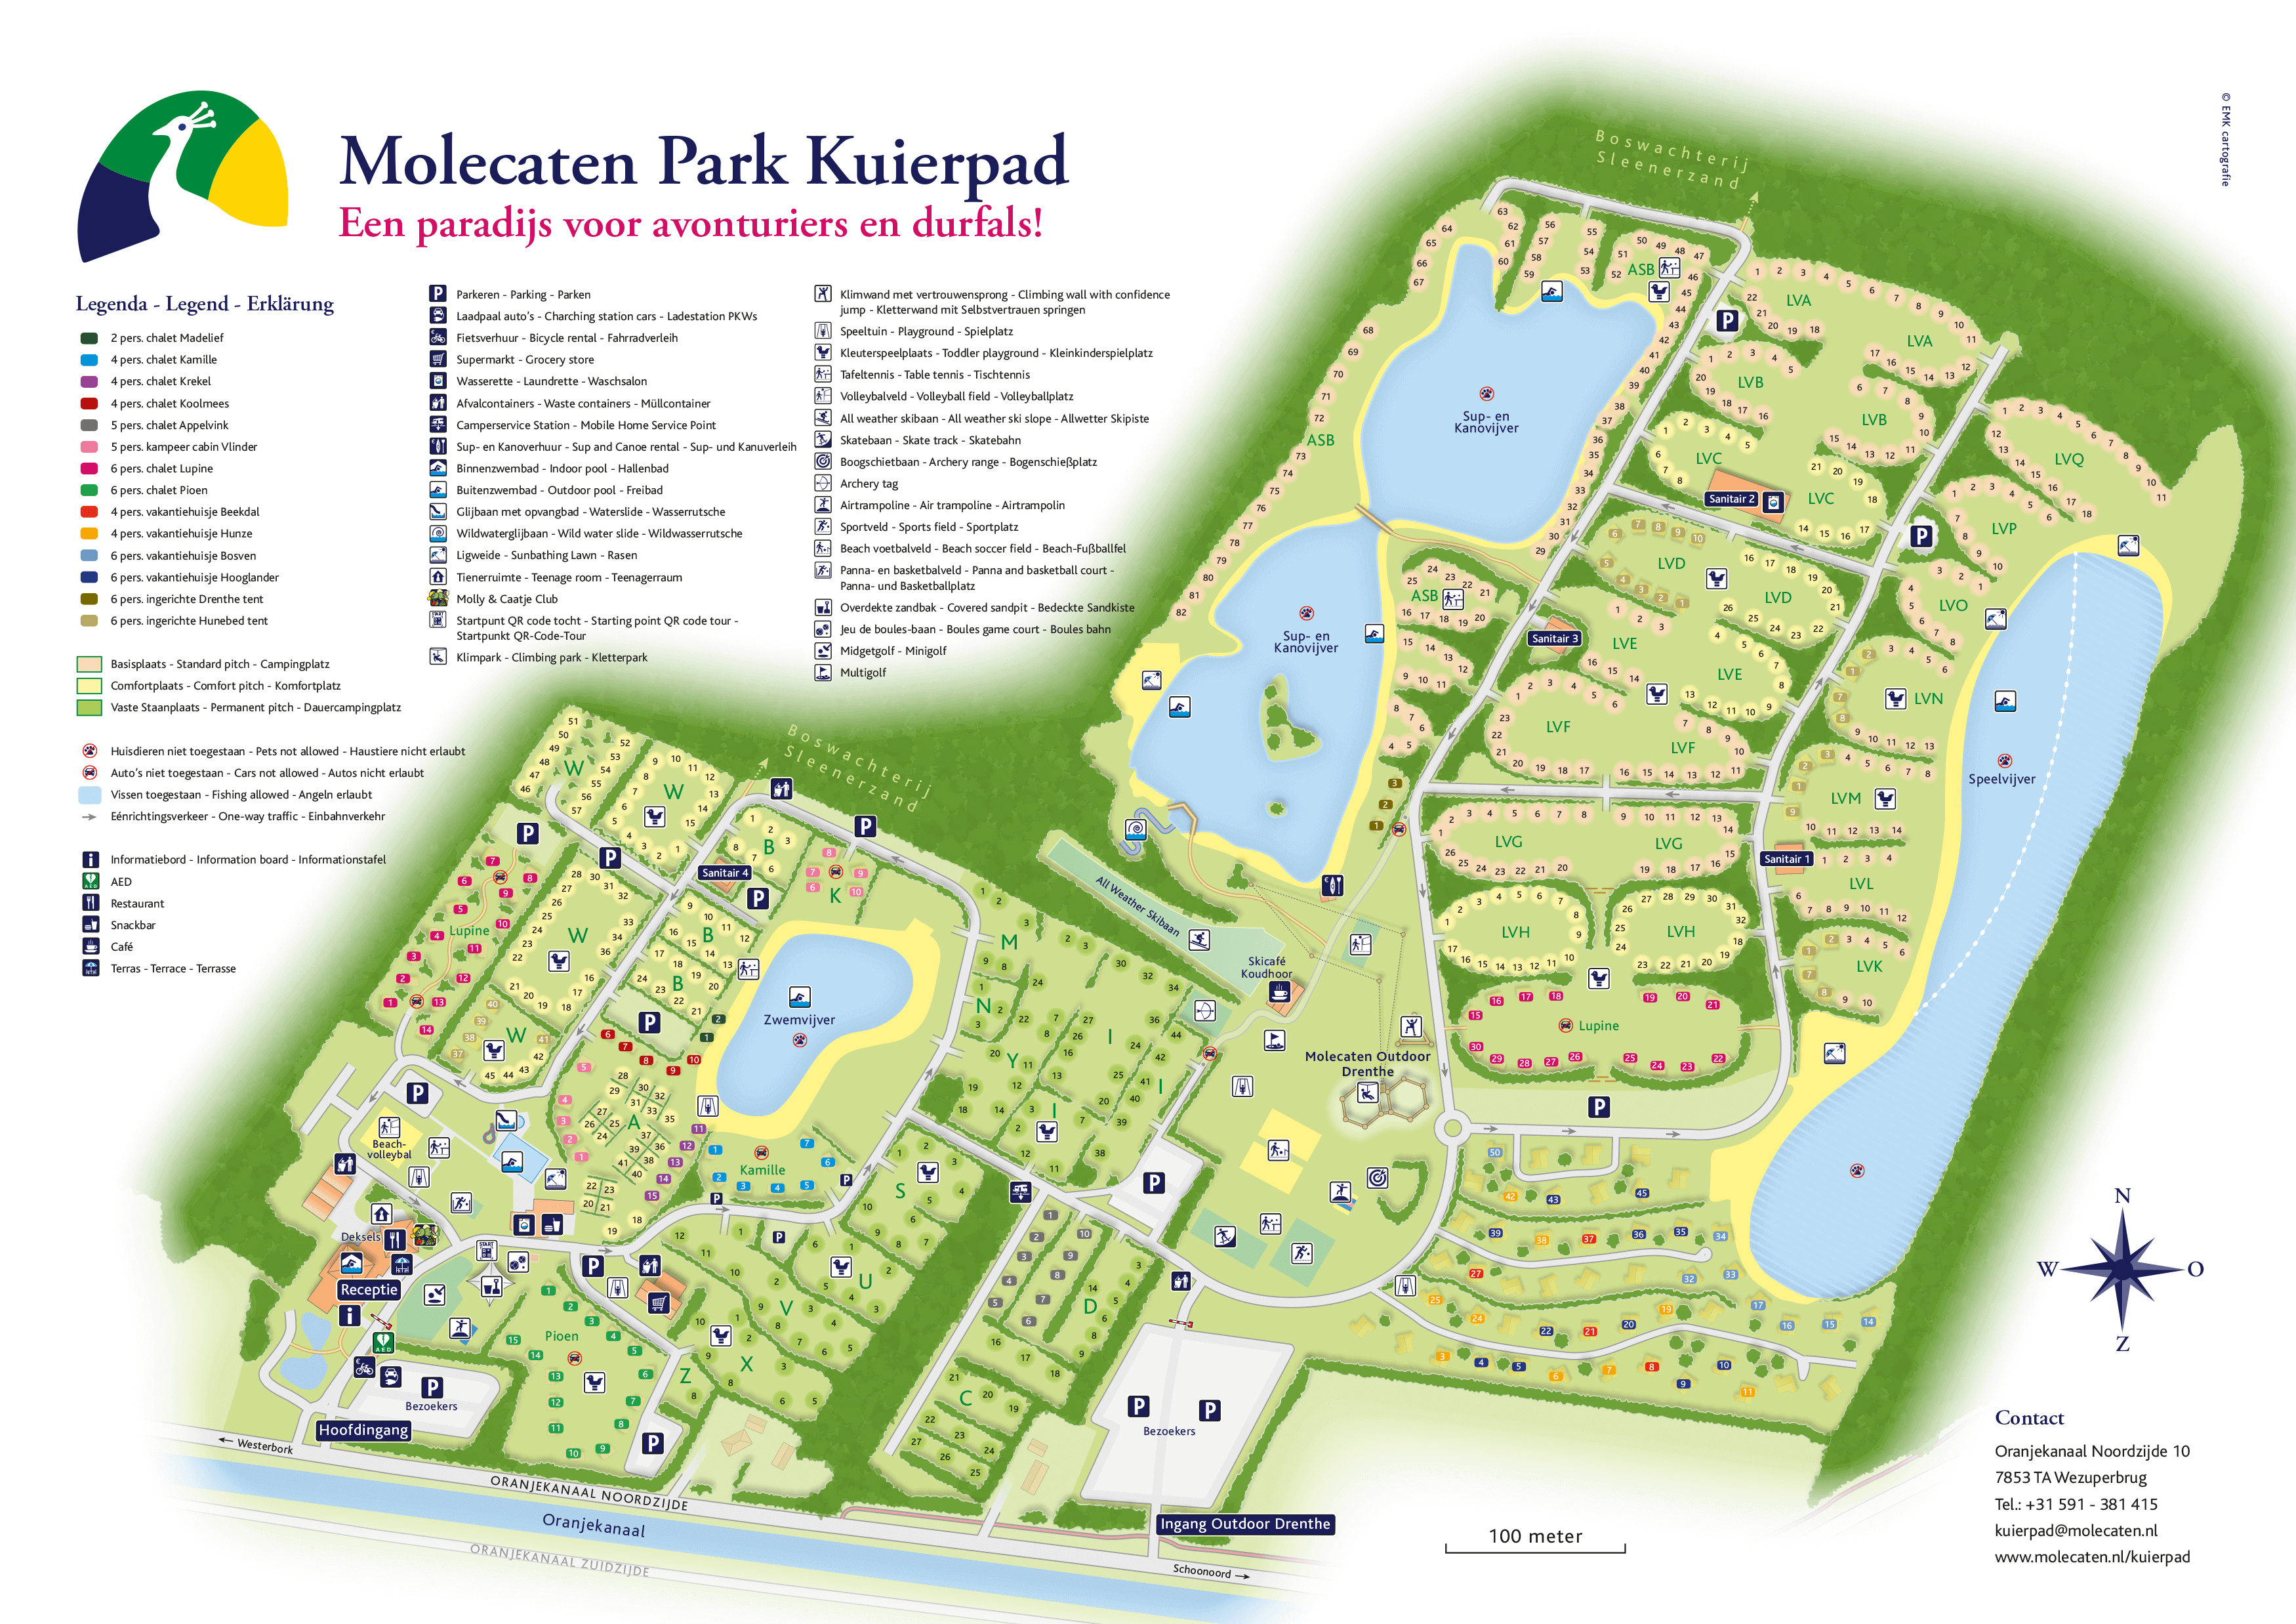 Molecaten Park Kuierpad accommodation.parkmap.alttext